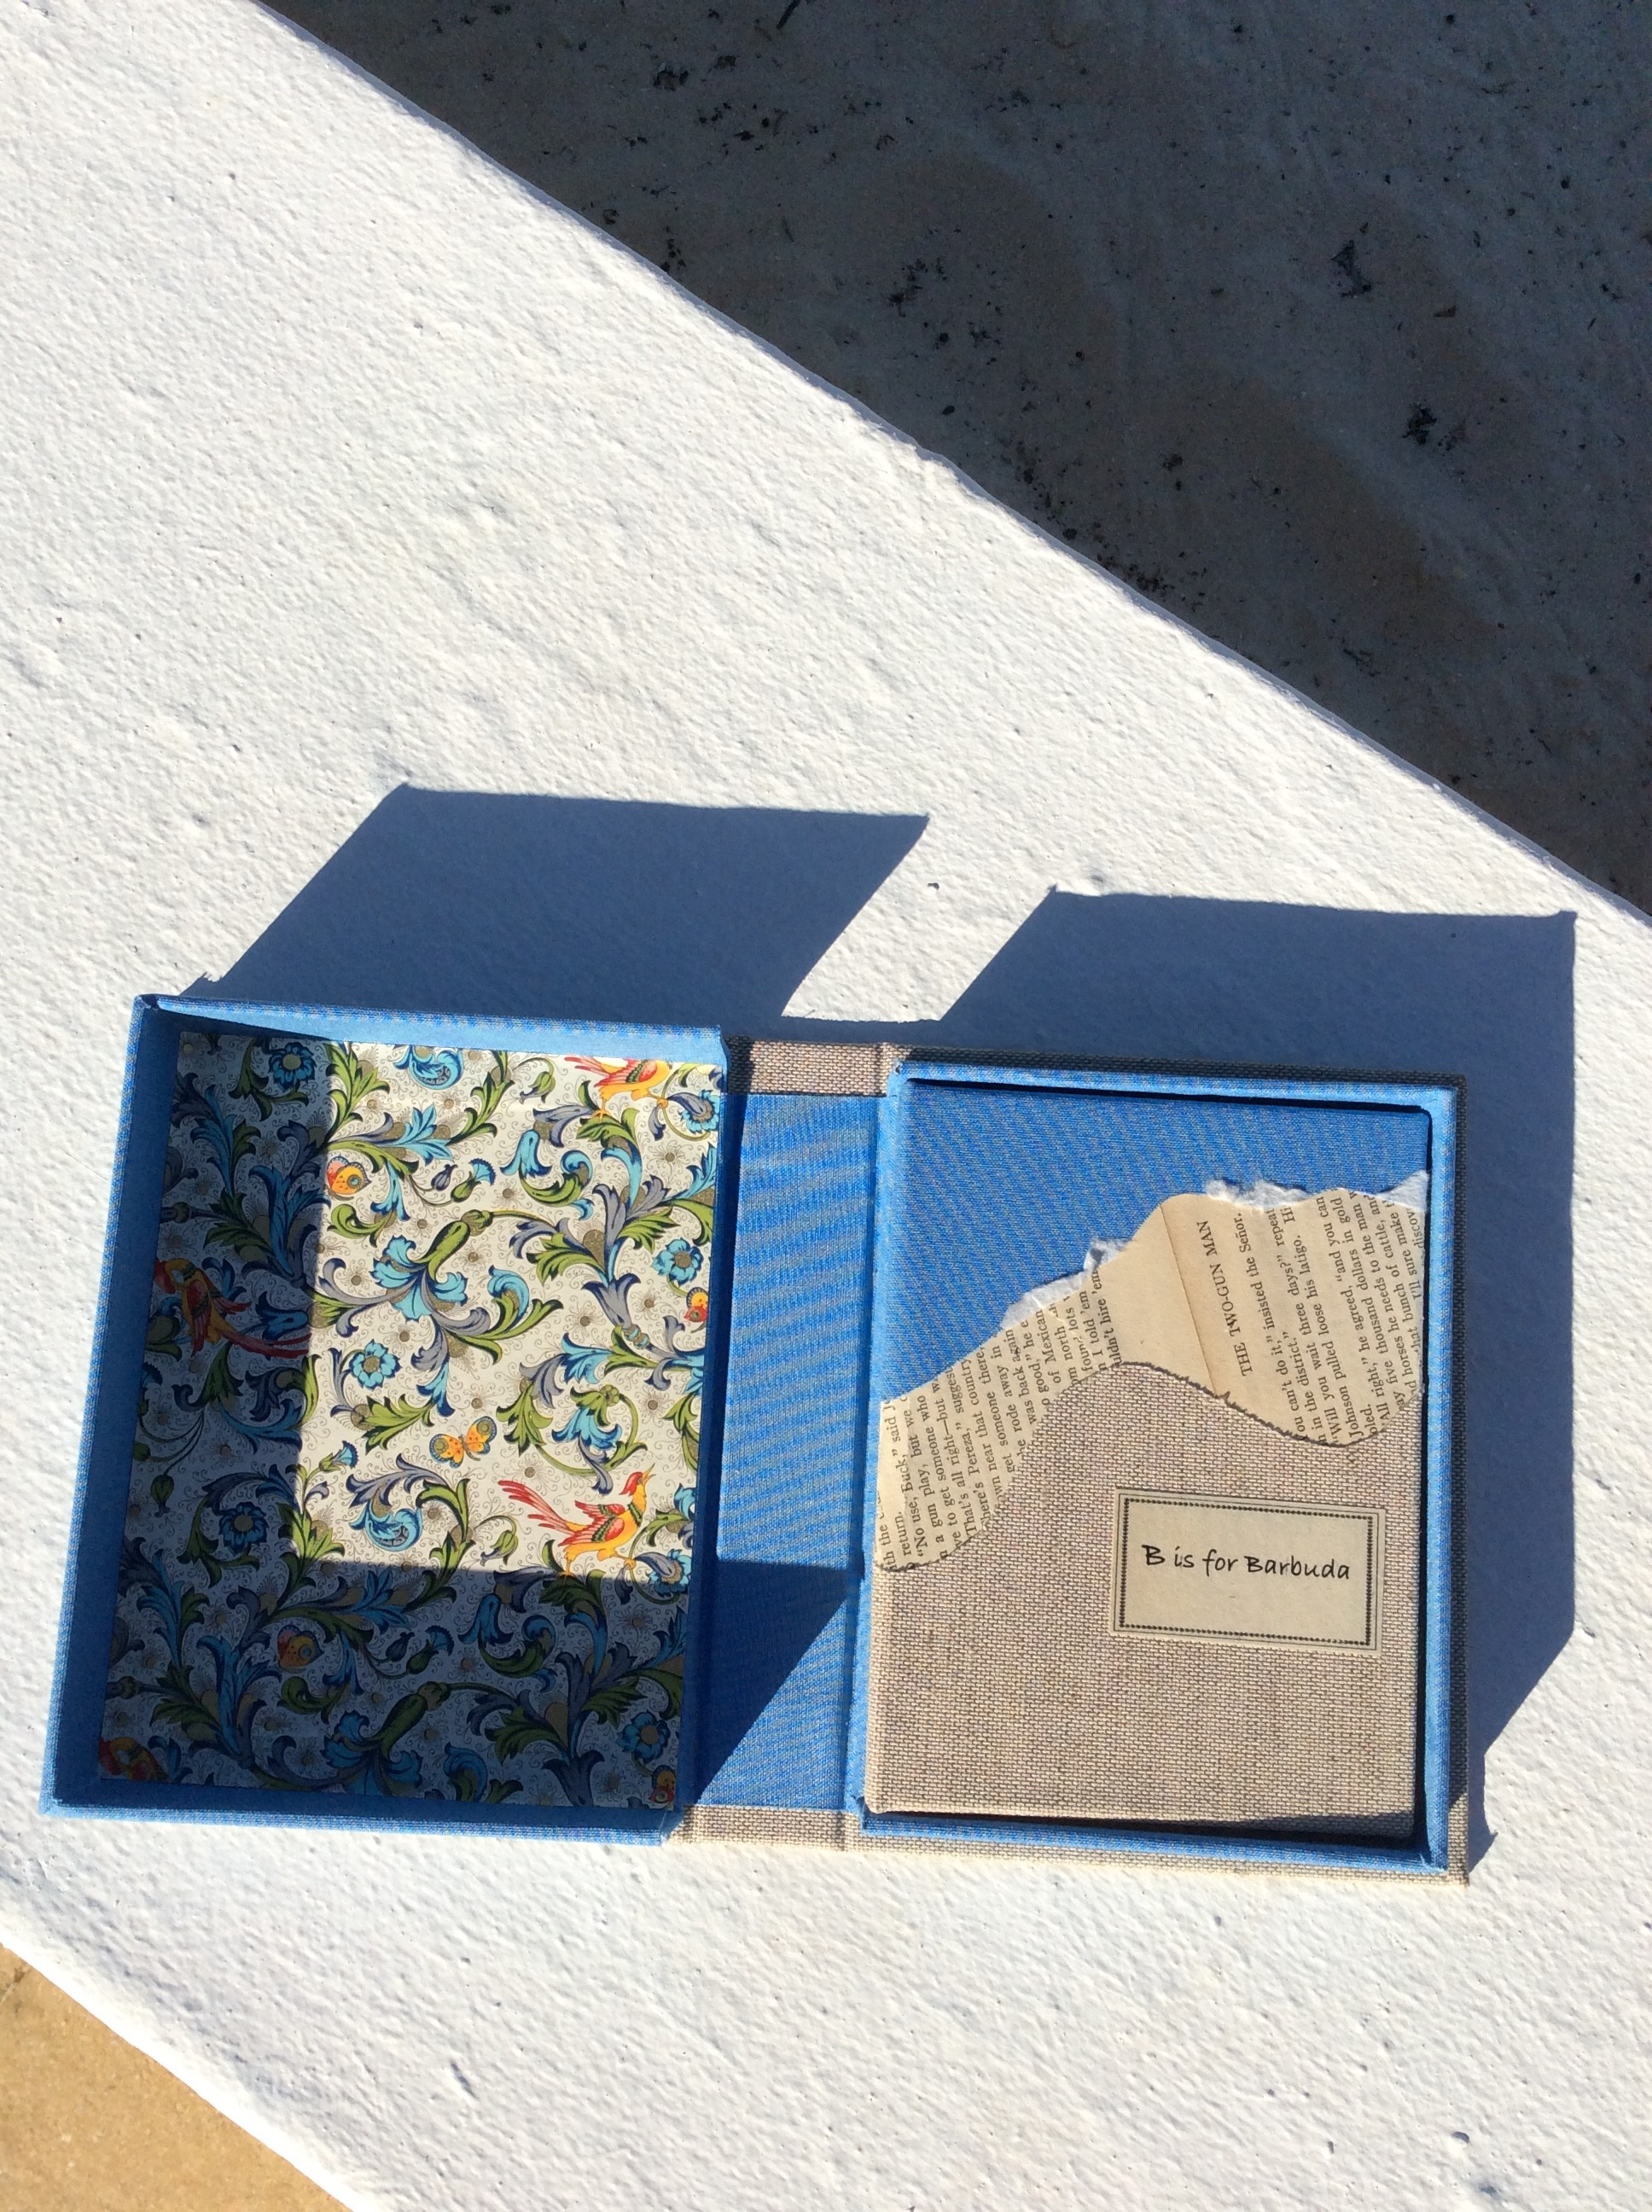 B is for Barbuda book inside open clam shell box